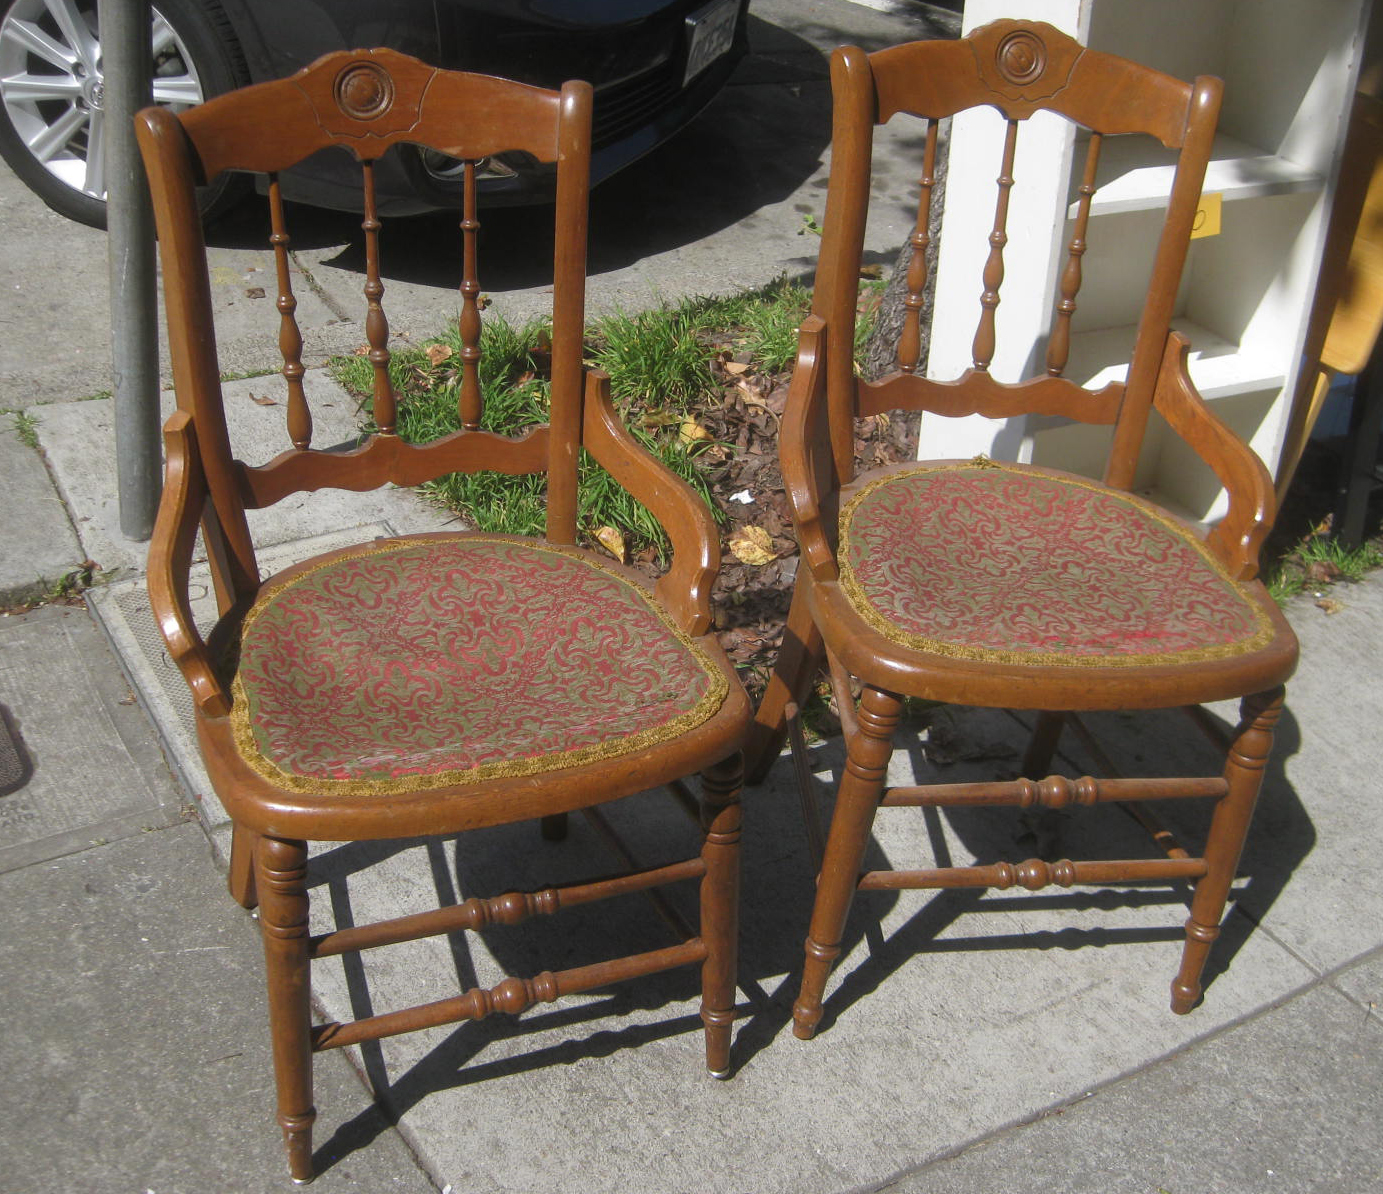 chairs for short people vintage cane chair uhuru furniture and collectibles sold old